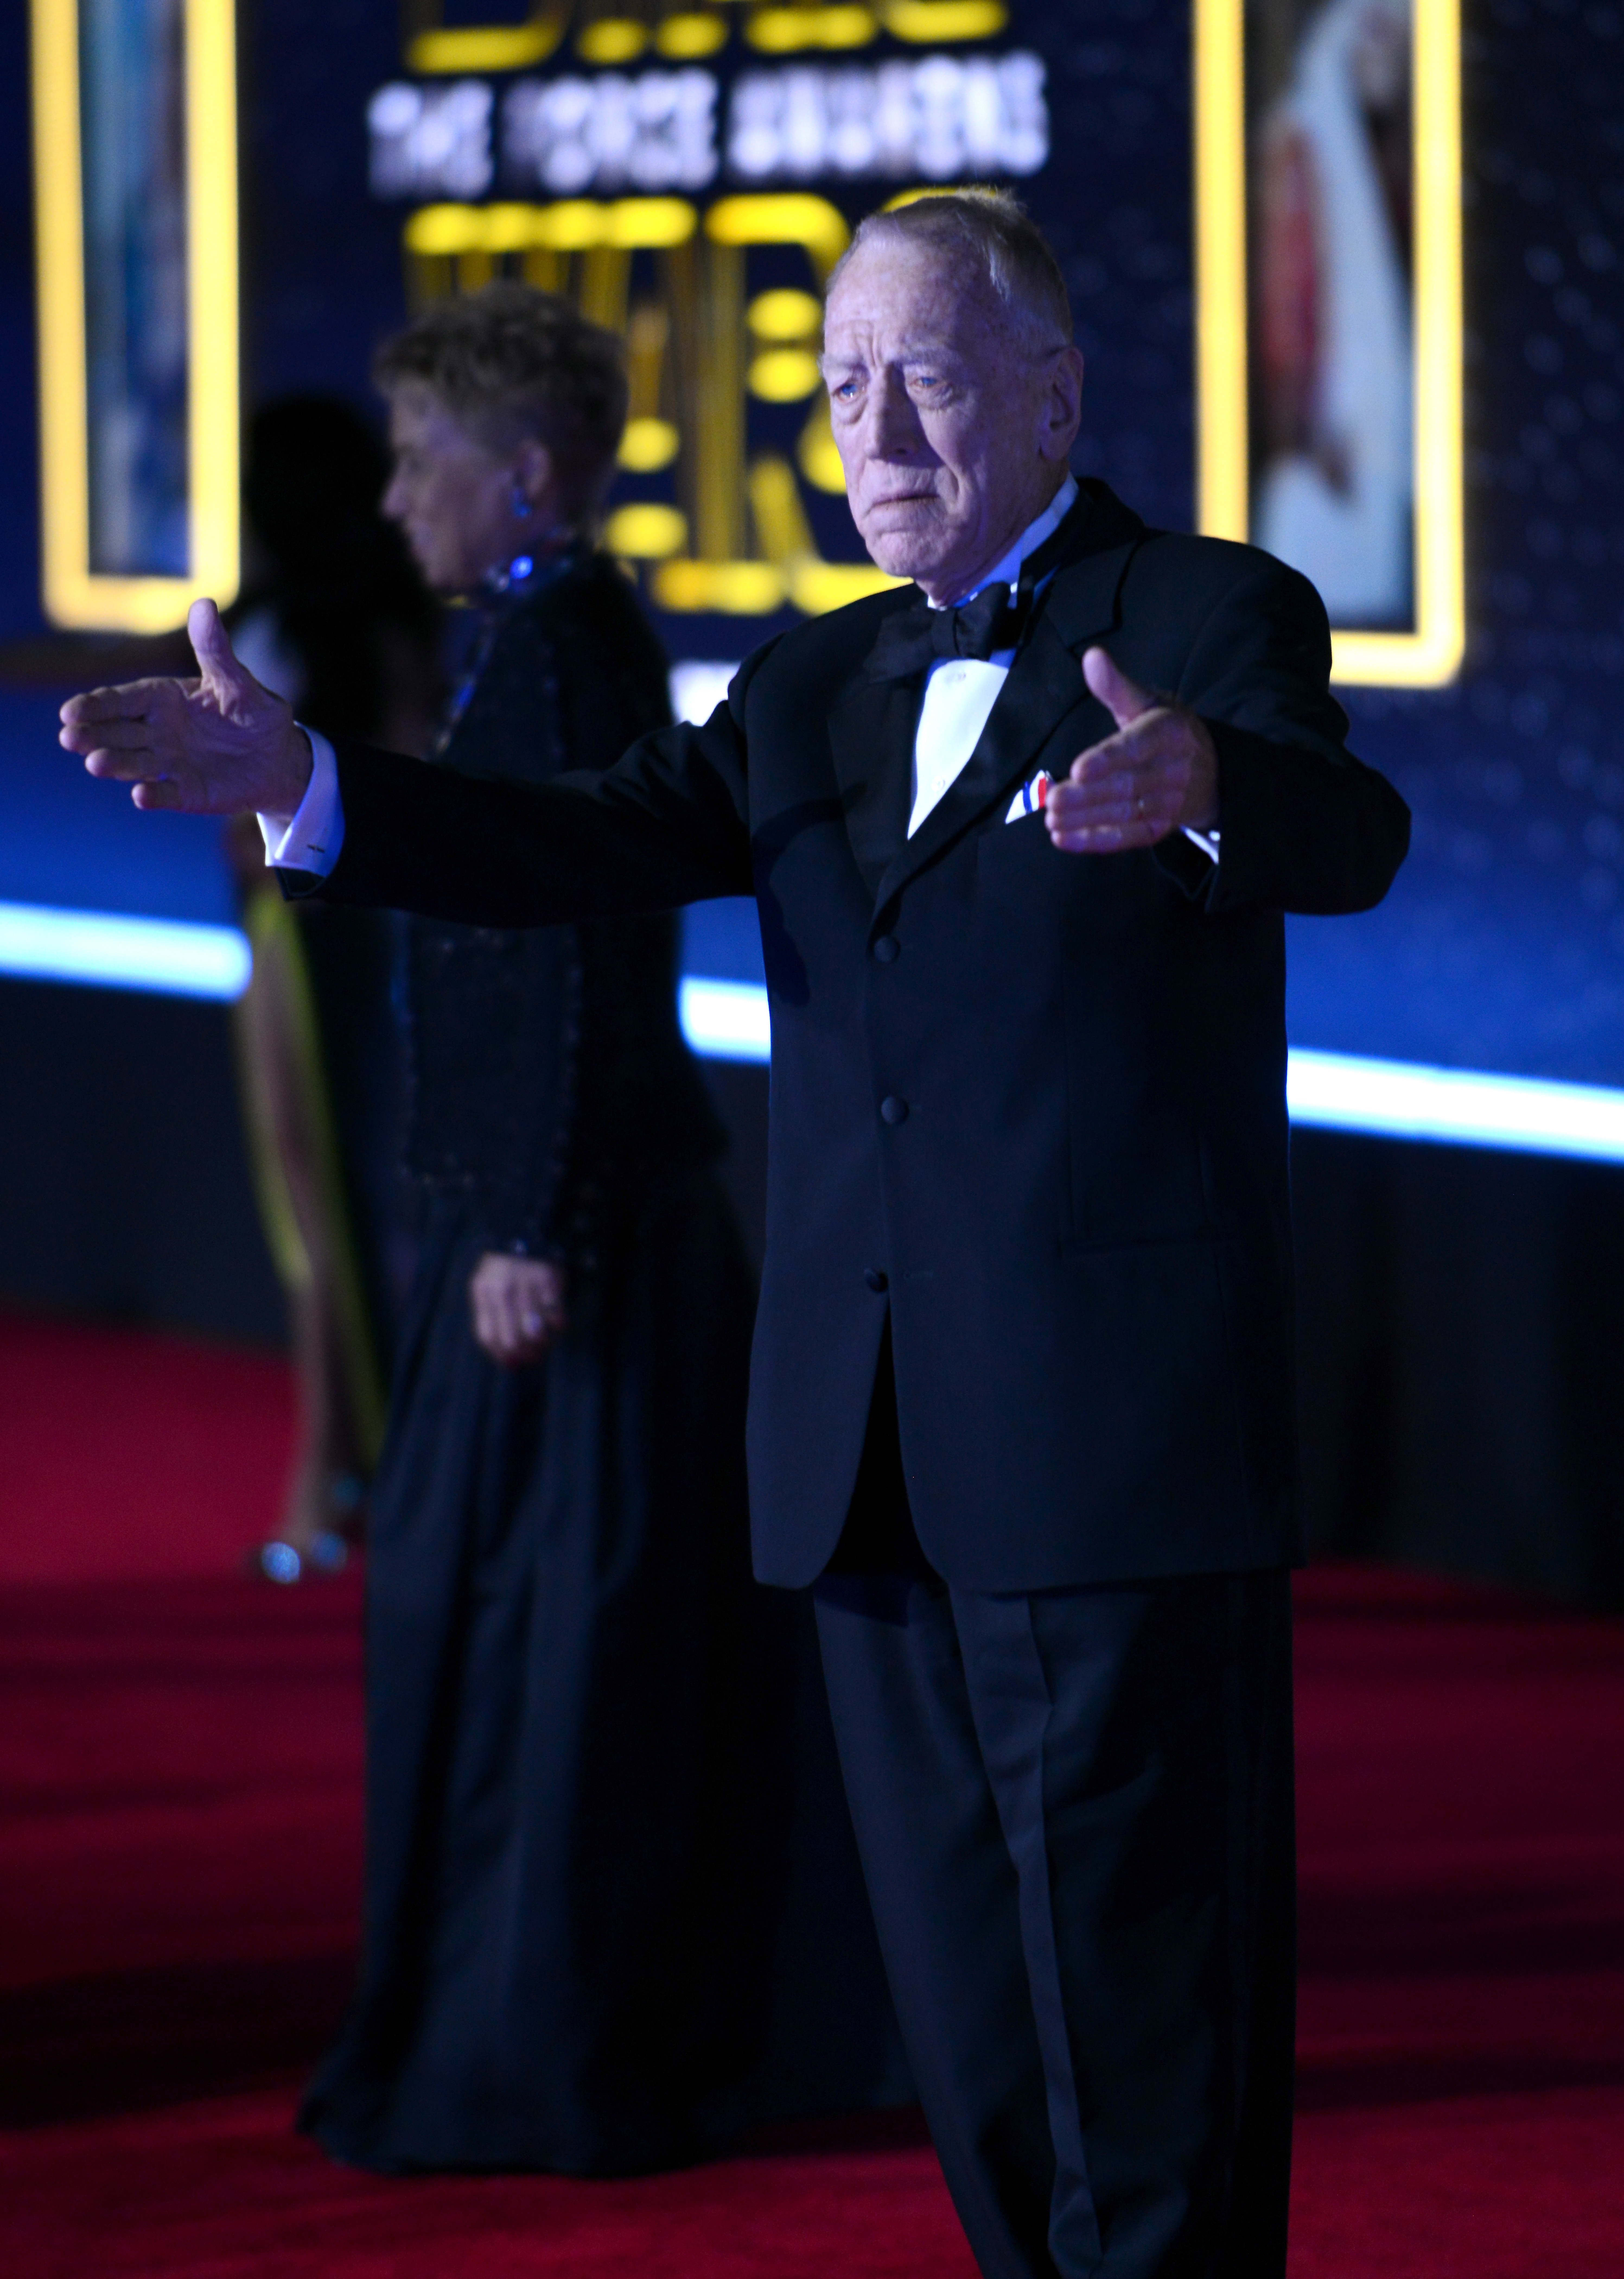 arrives for the Premiere Of Walt Disney Pictures And Lucasfilm's 'Star Wars: The Force Awakens'  held on December 14, 2015 in